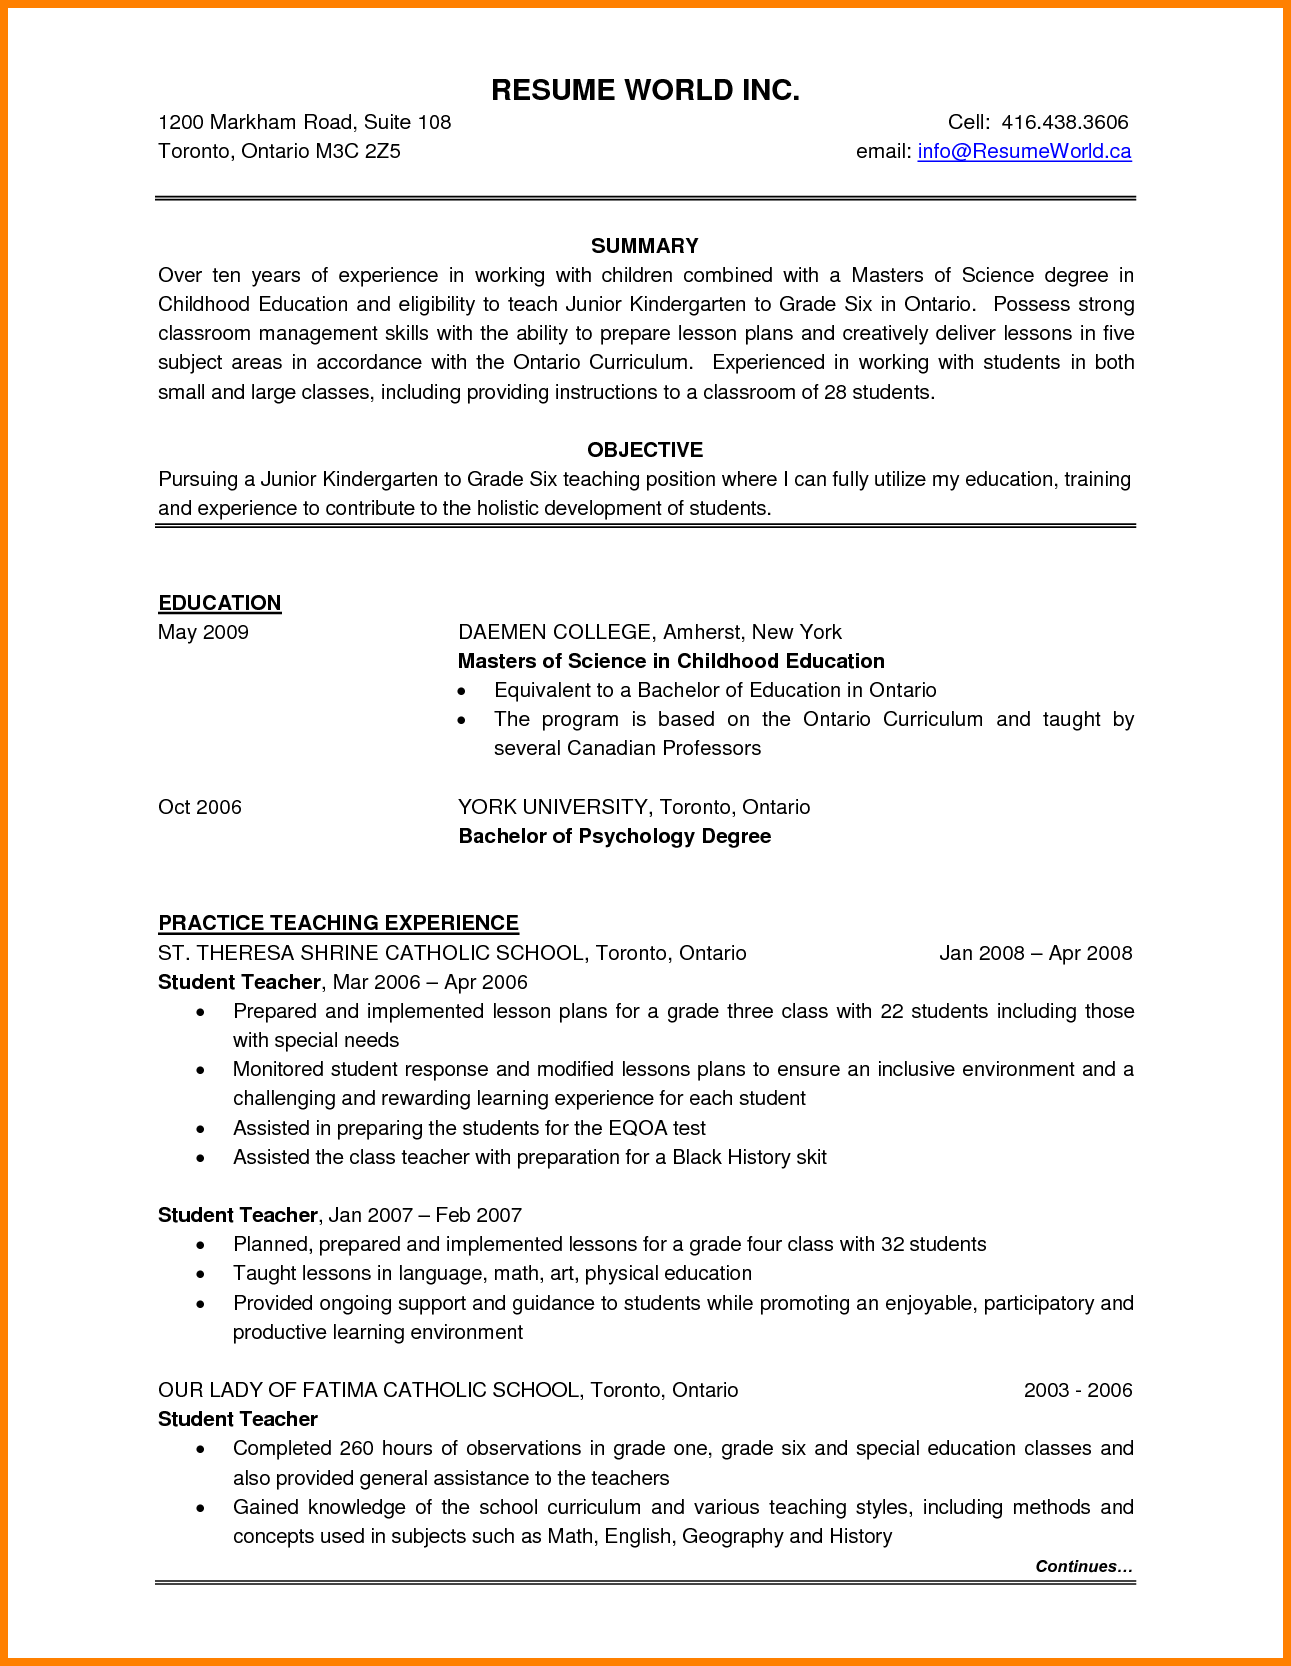 Free Resume Templates Ontario Free Resume Templates Pinterest